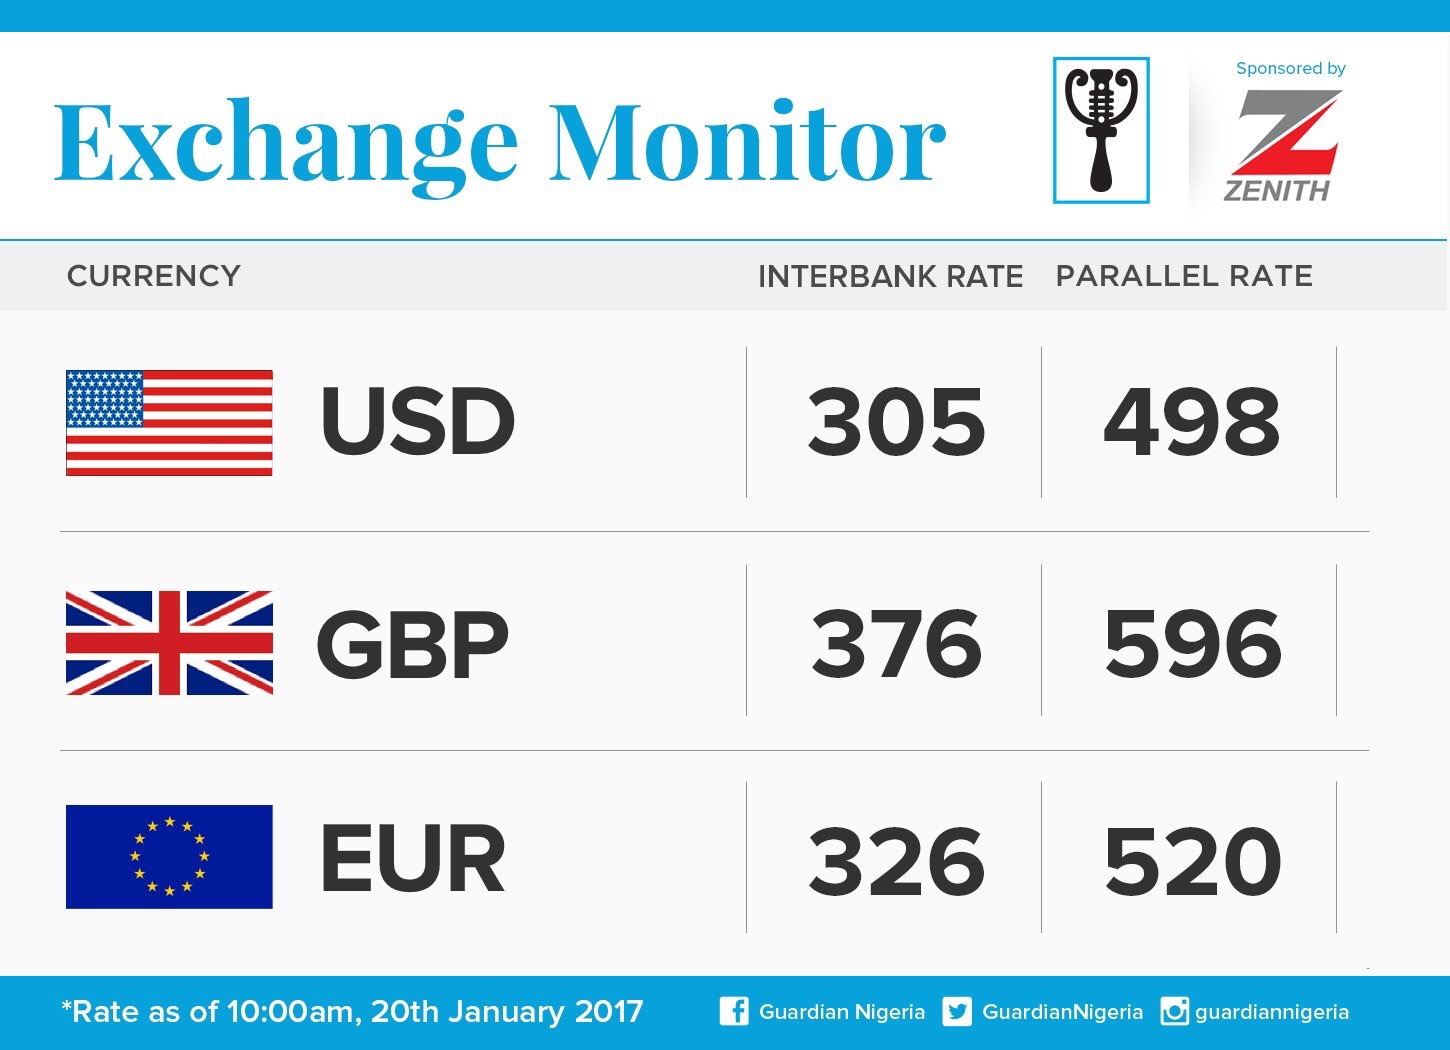 Exchange Rate For 20th January 2017